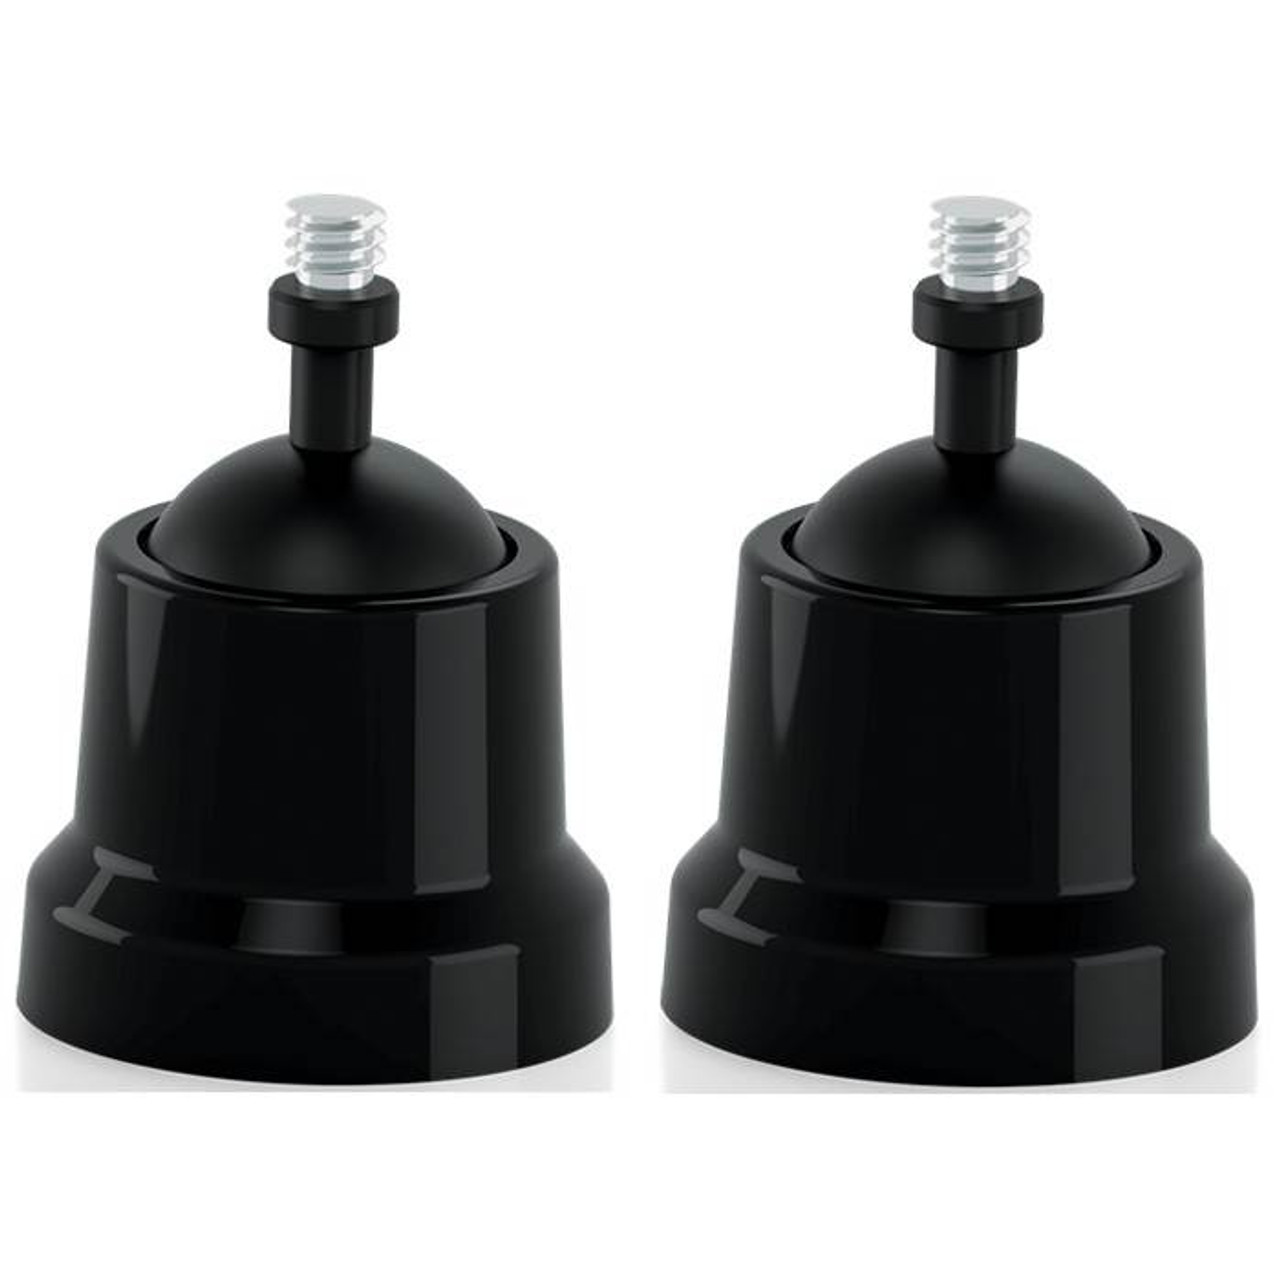 Image for Arlo Pro VMA4000B Outdoor mount (Pack of two) - Black CX Computer Superstore